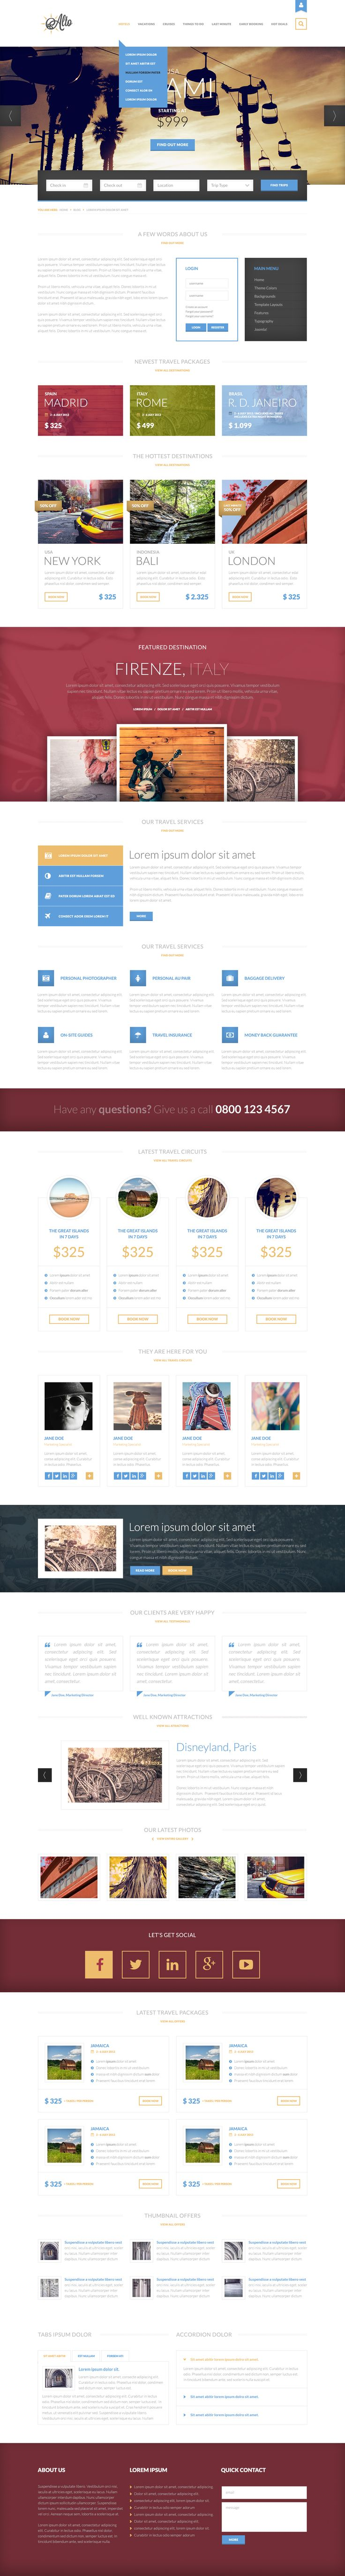 New Joomla! boostraped based responsive template from RSJoomla!